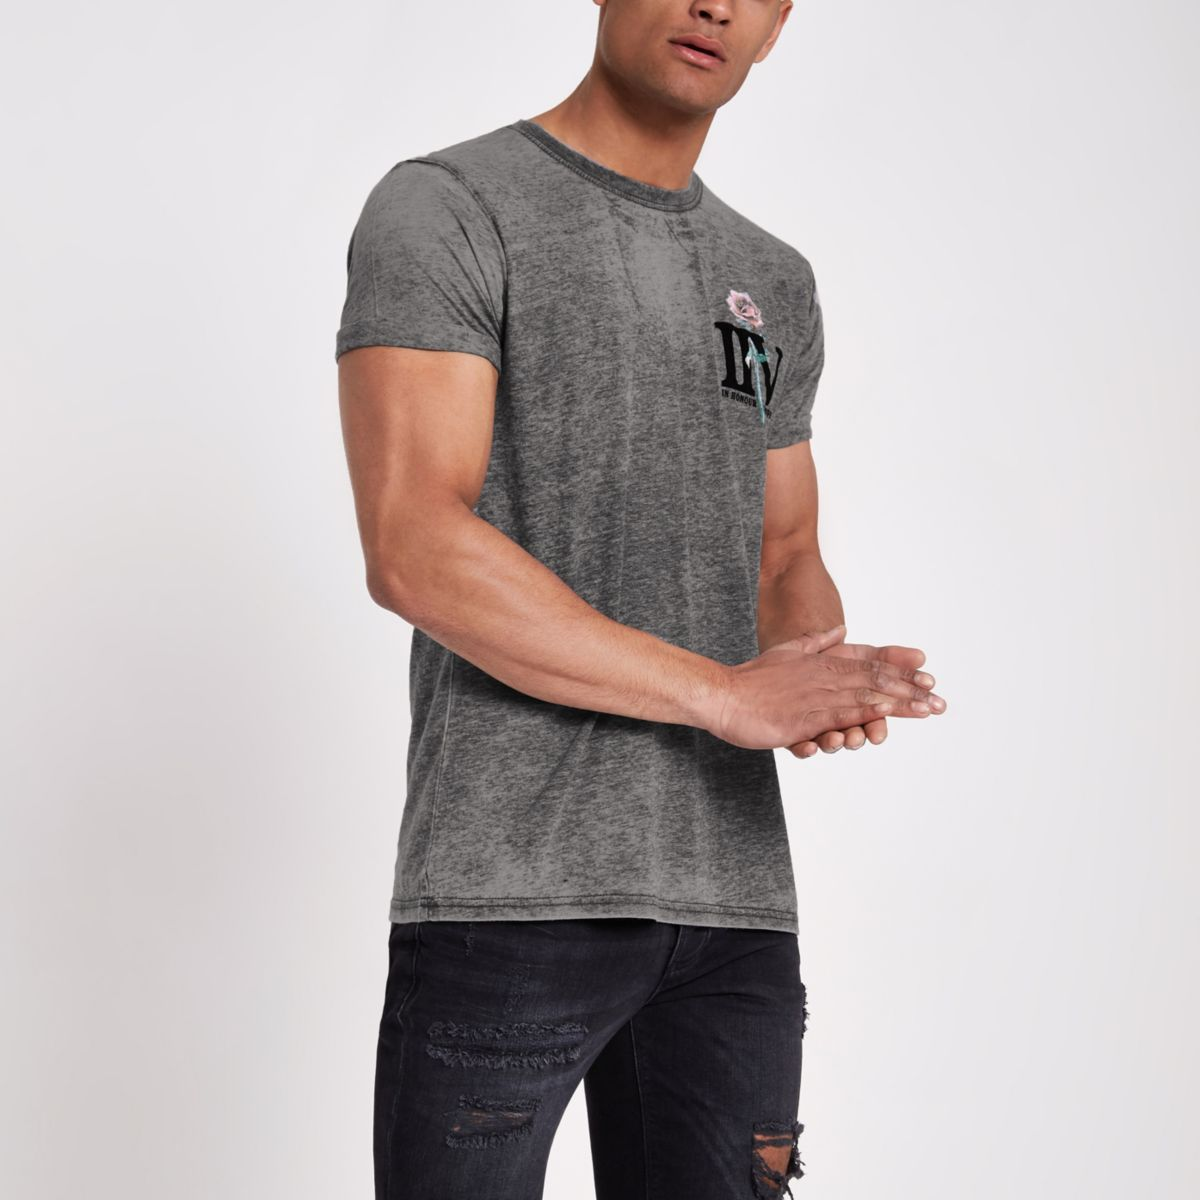 Grey 'IIV' rose print slim fit T-shirt